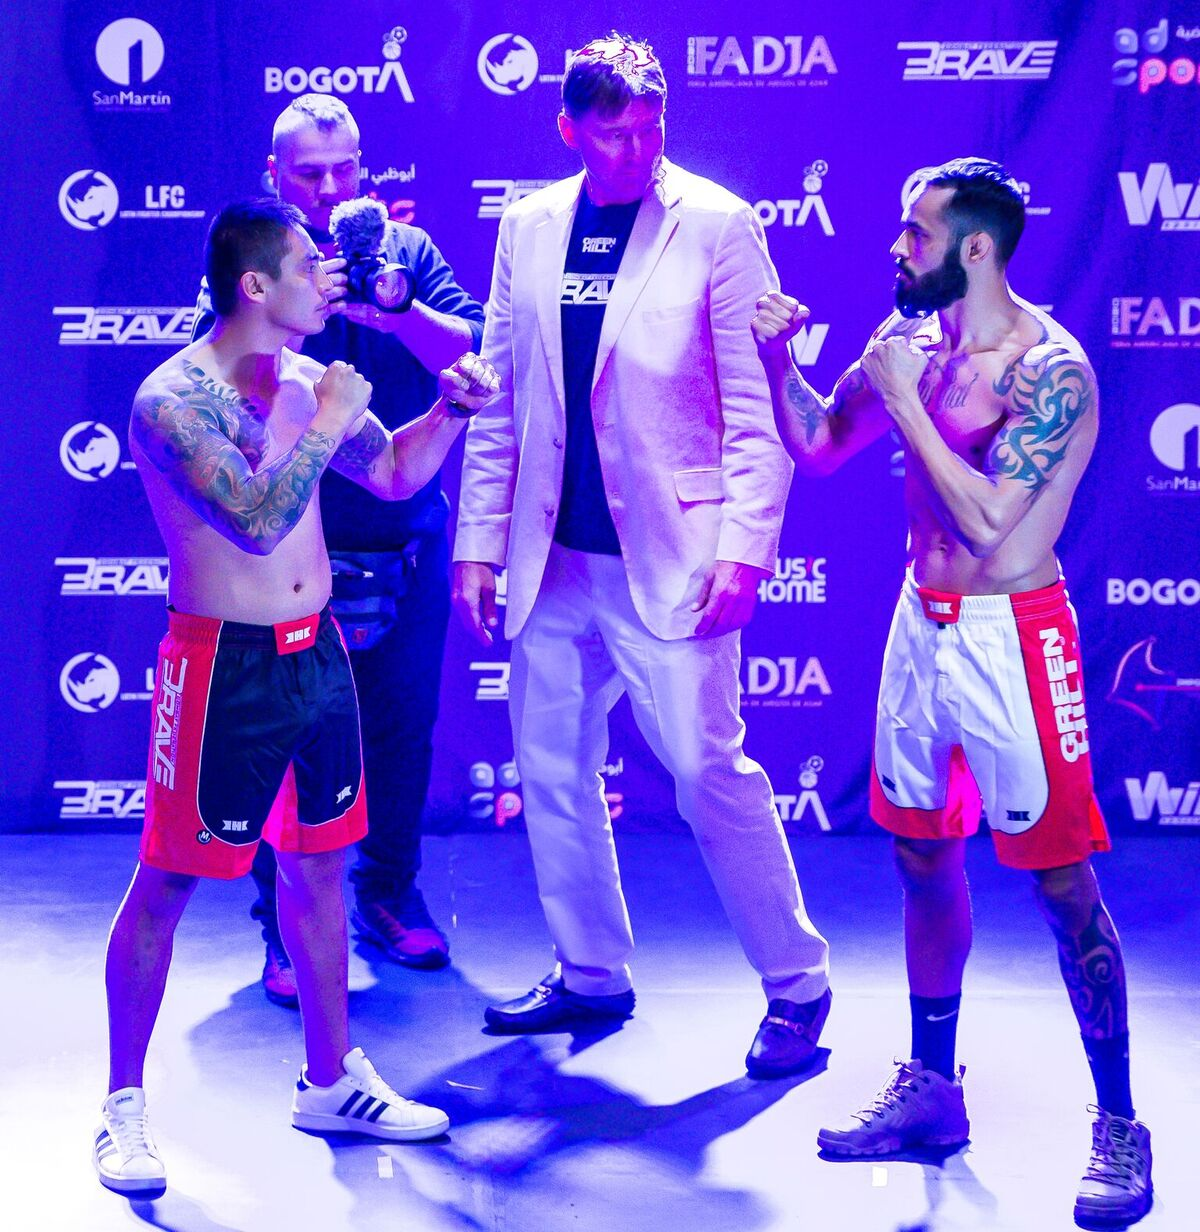 BRAVE 26 fighters light up Colombian crowd at ceremonial weigh-ins -